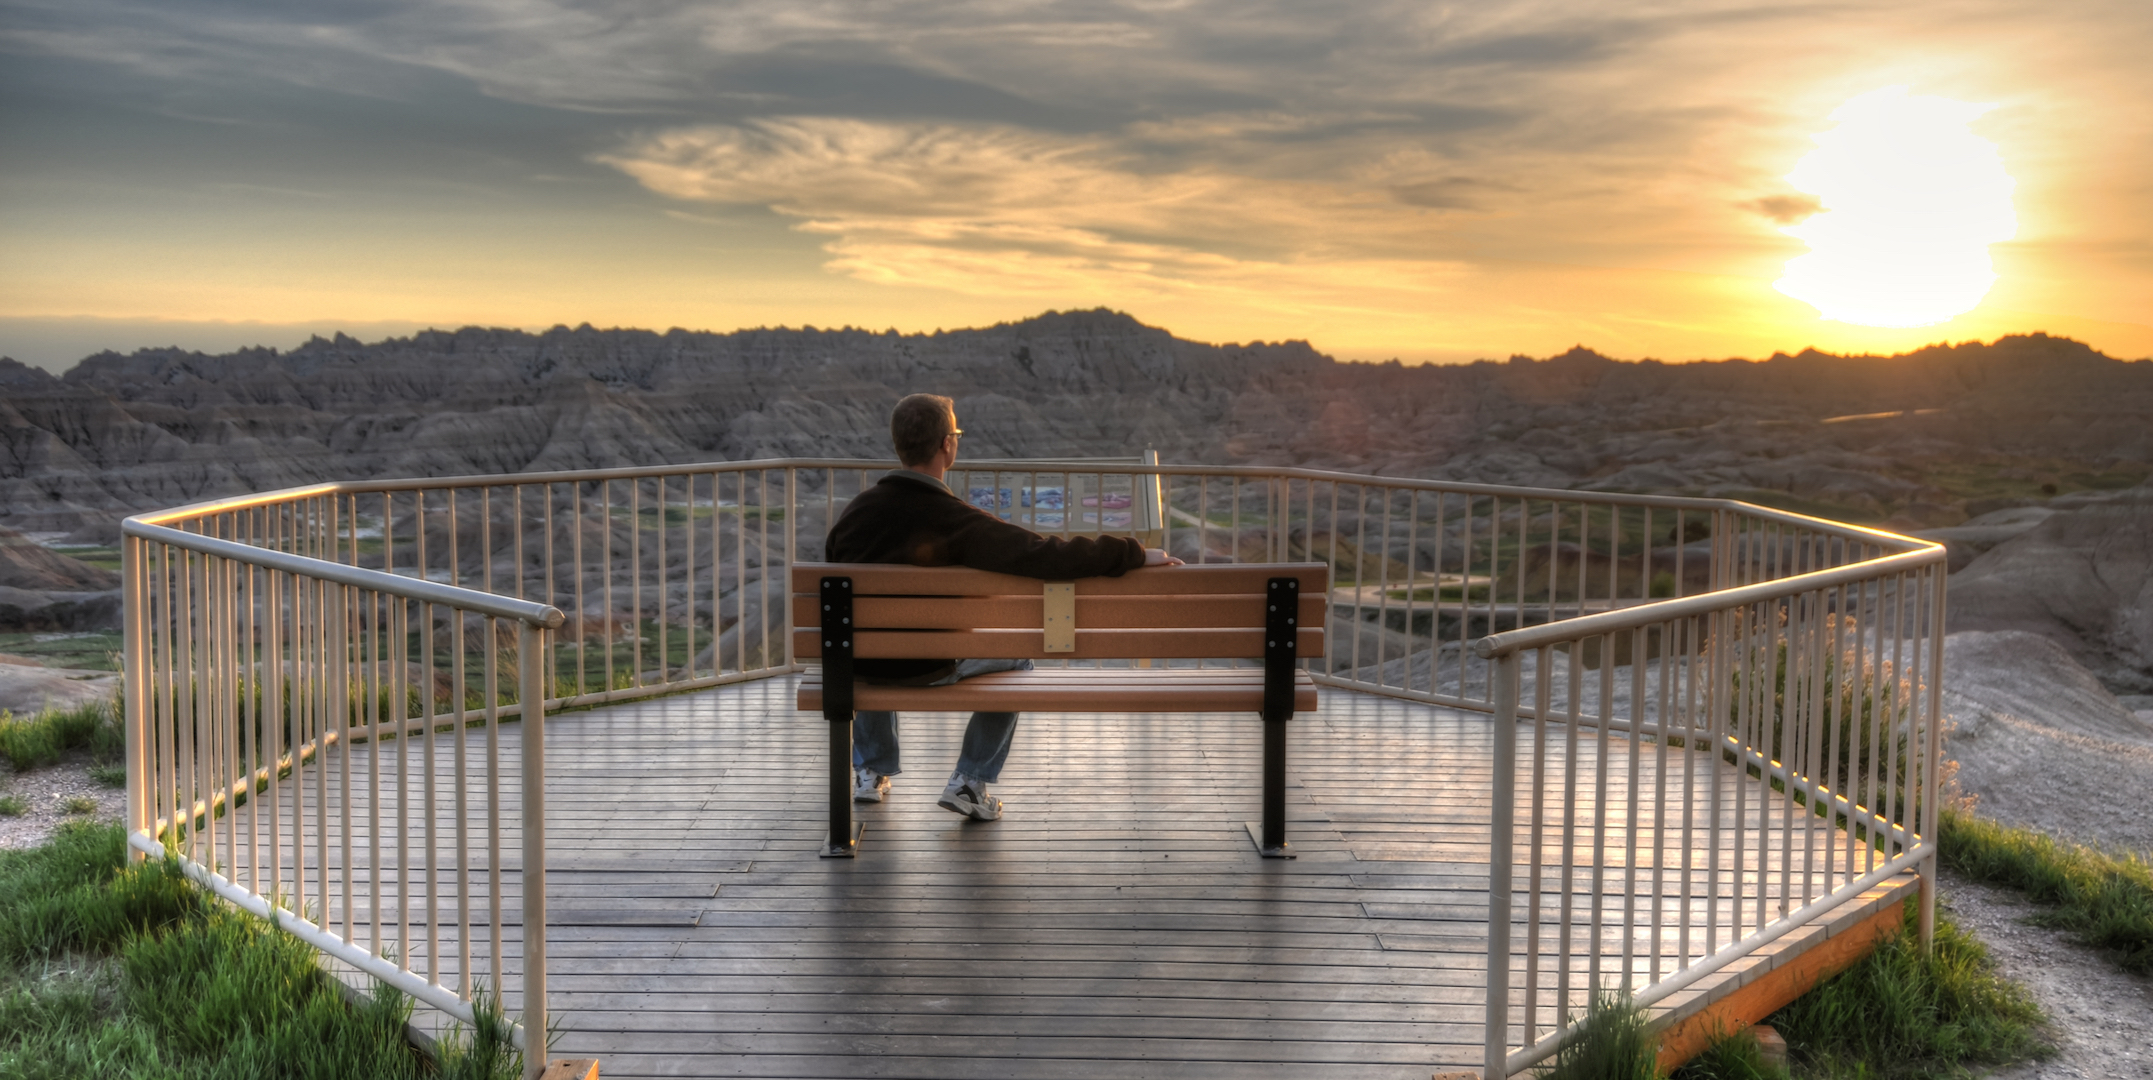 Conata Basin Overlook, Badlands National Park